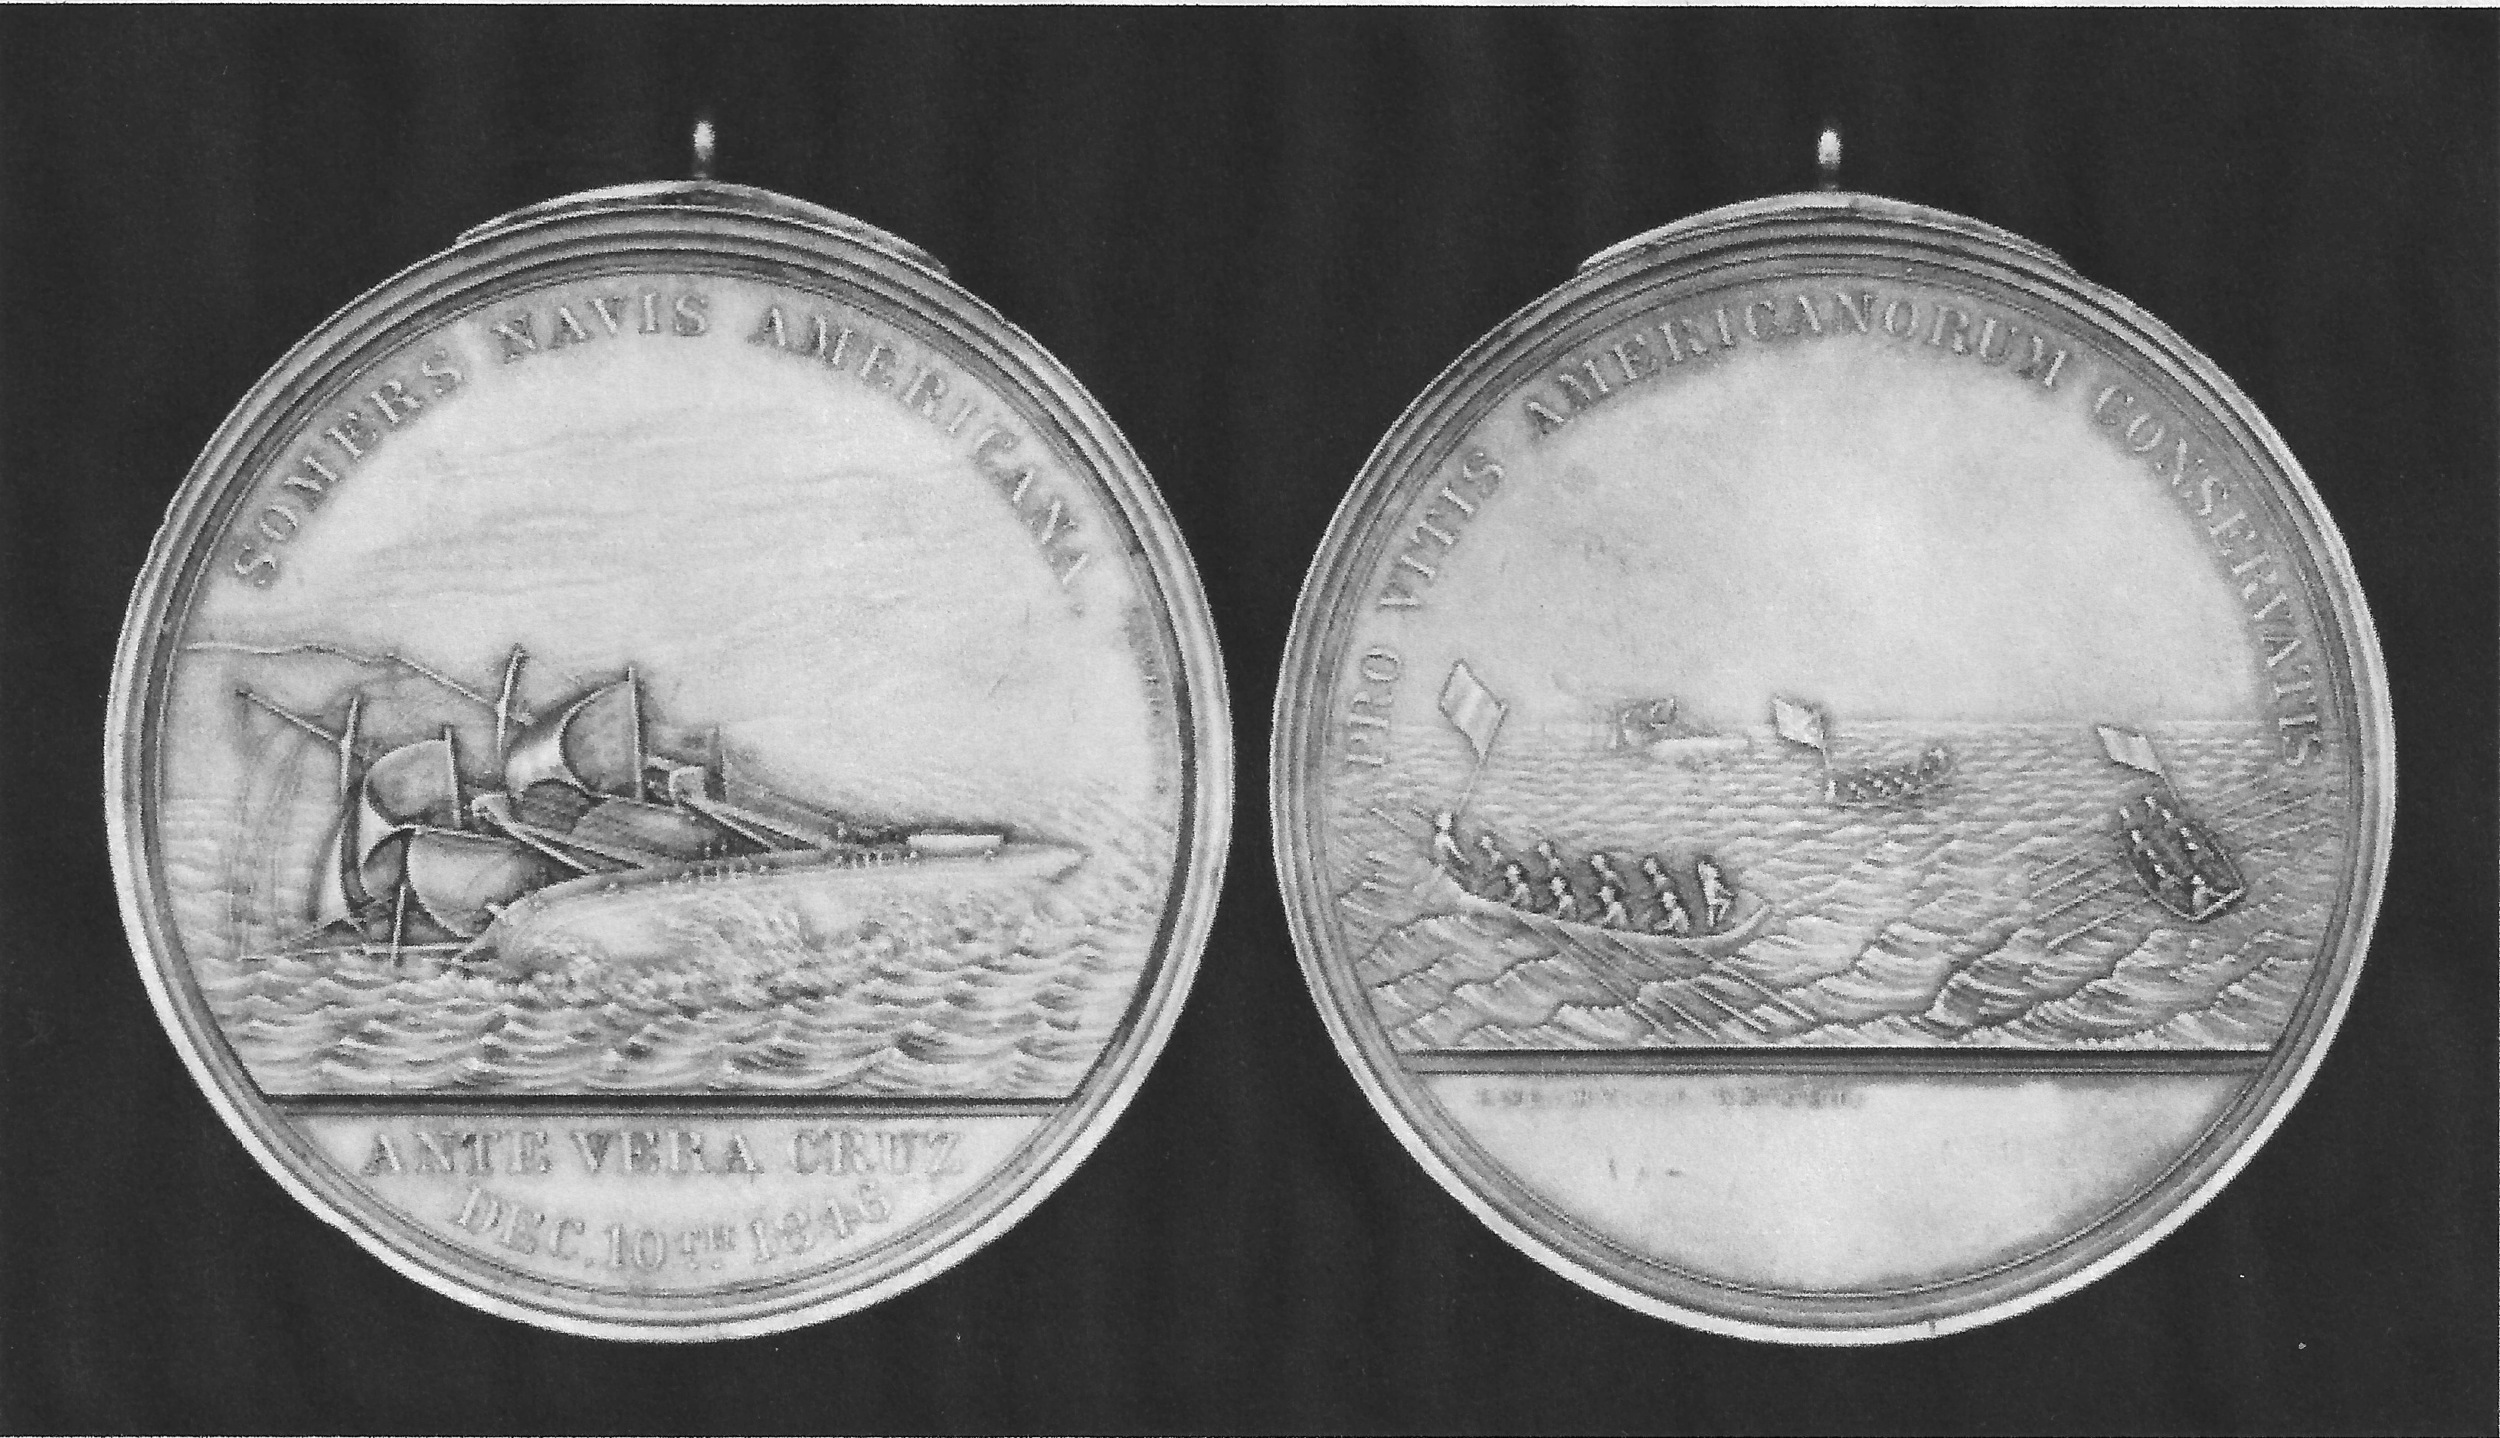 US Congressional Medal